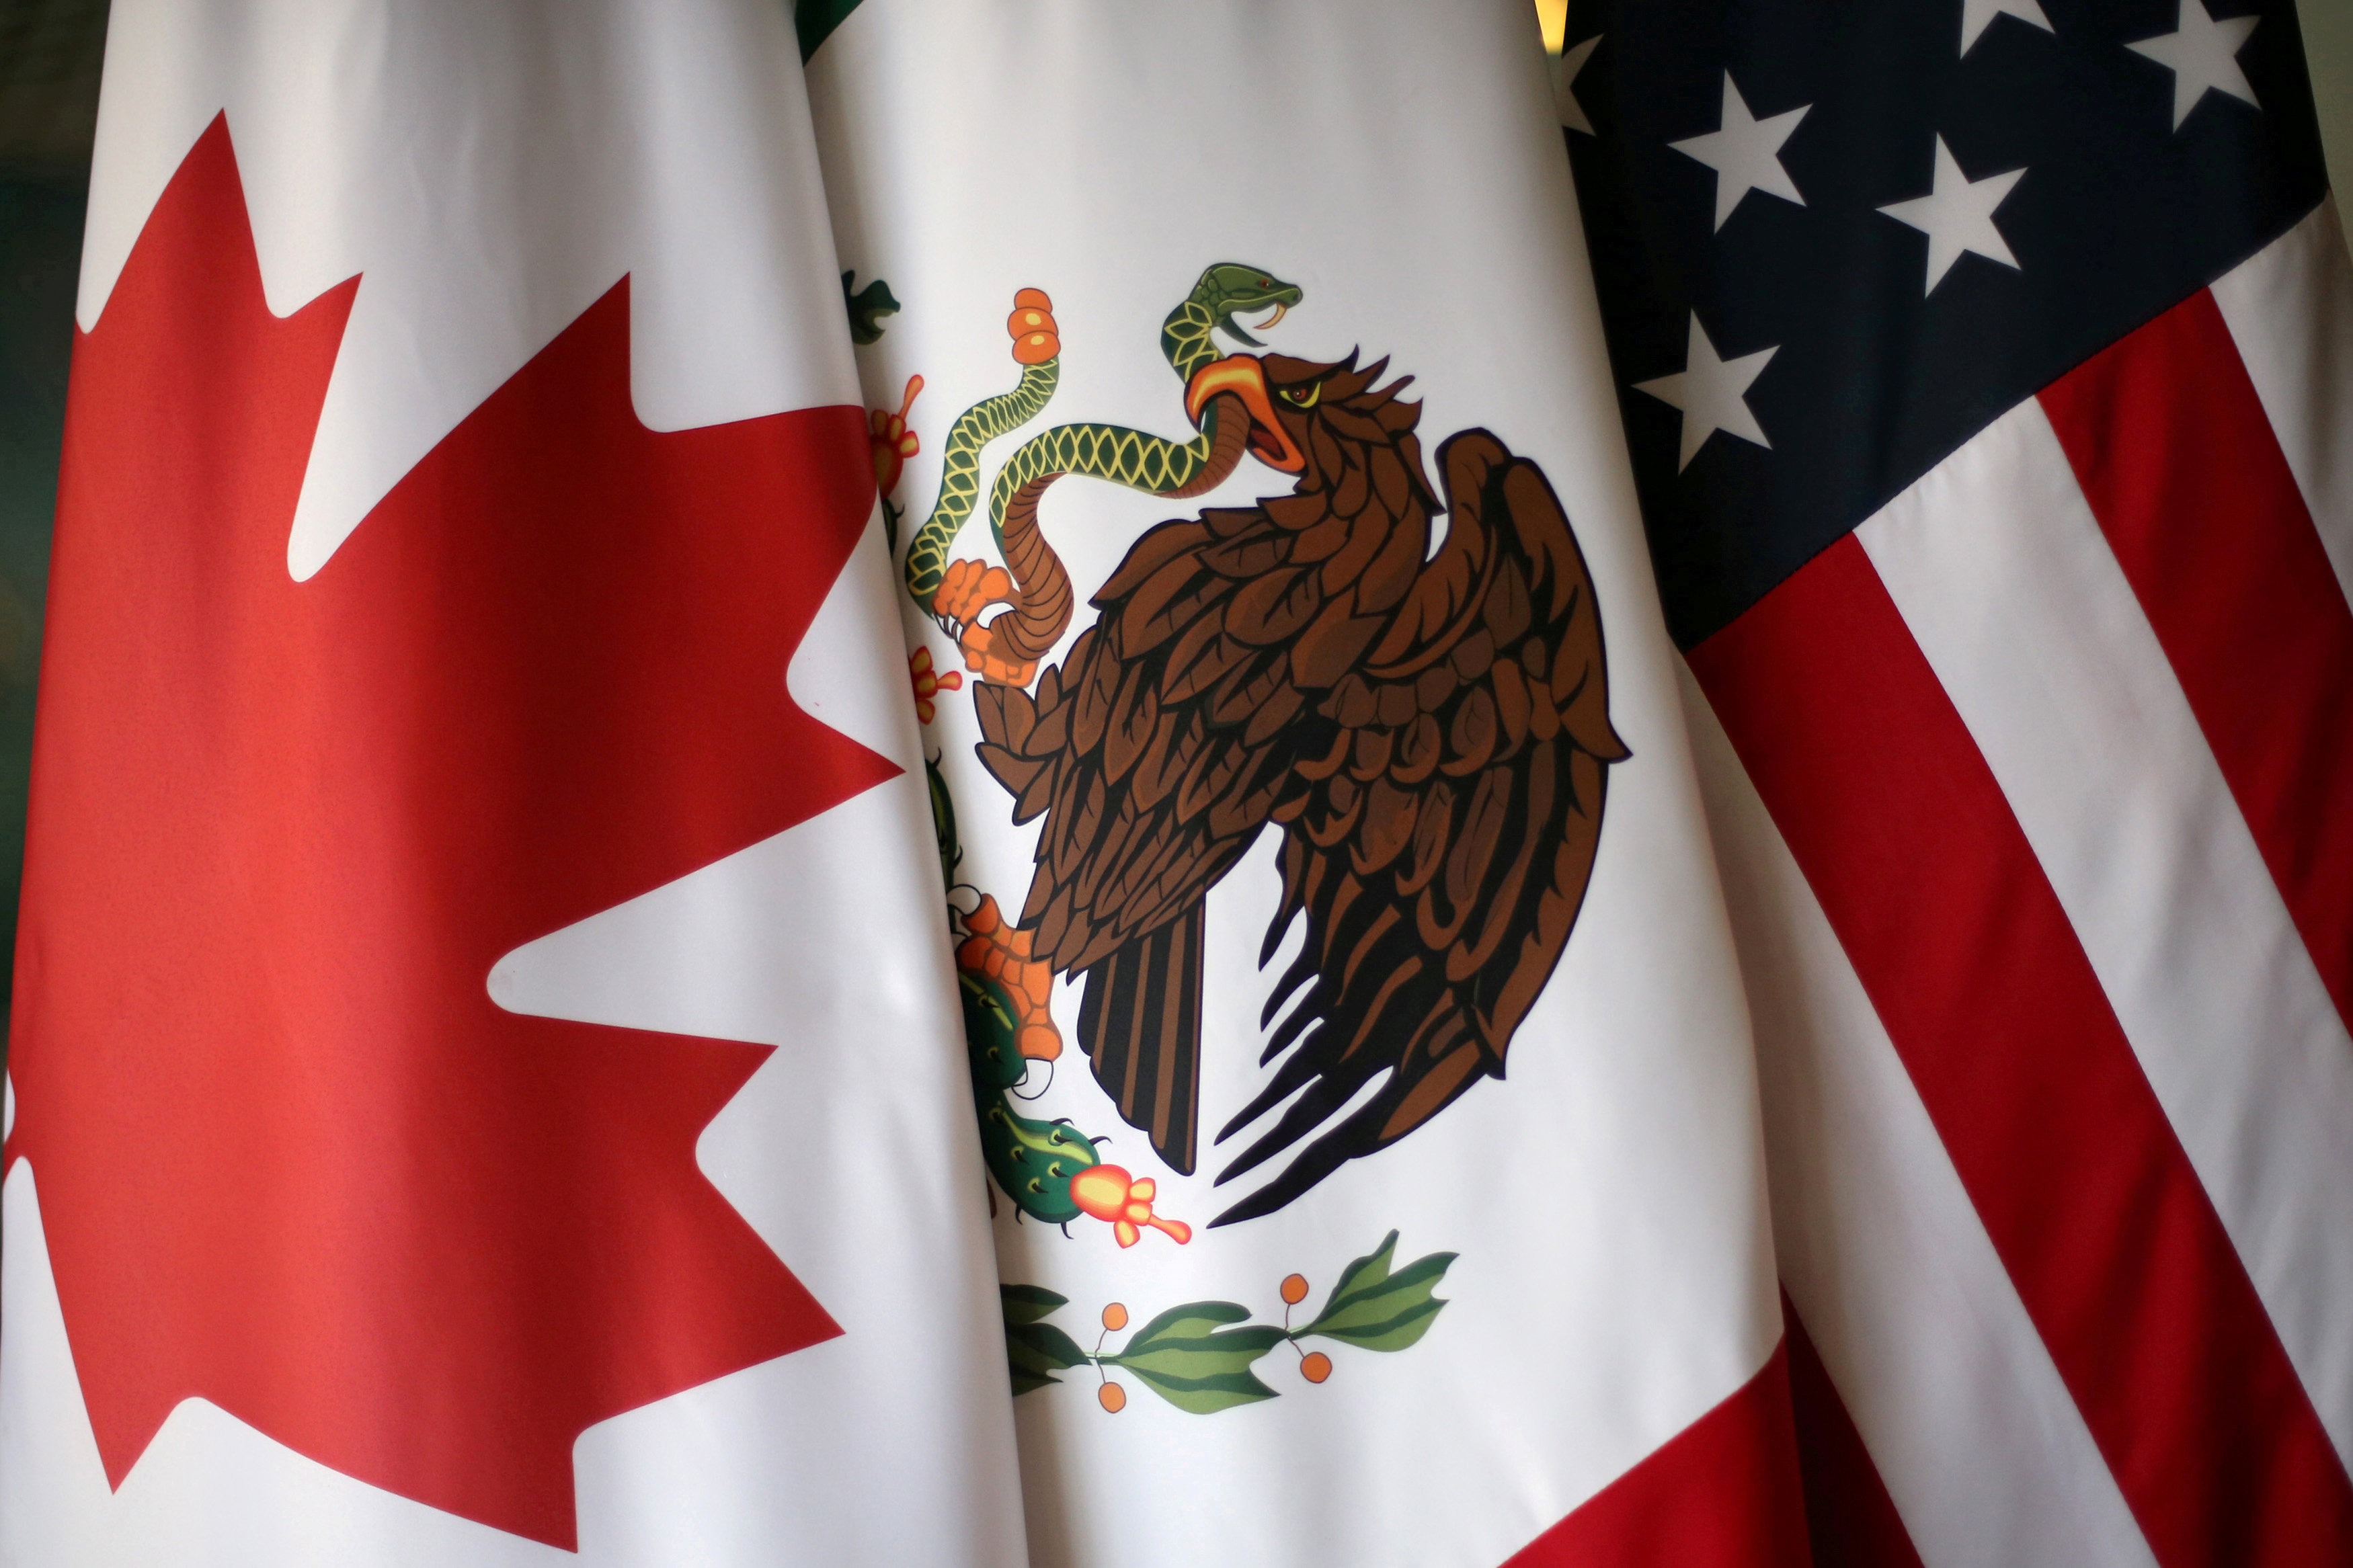 Flags are pictured during the fifth round of NAFTA talks involving the United States, Mexico and Canada, in Mexico City, Mexico, November 19, 2017.